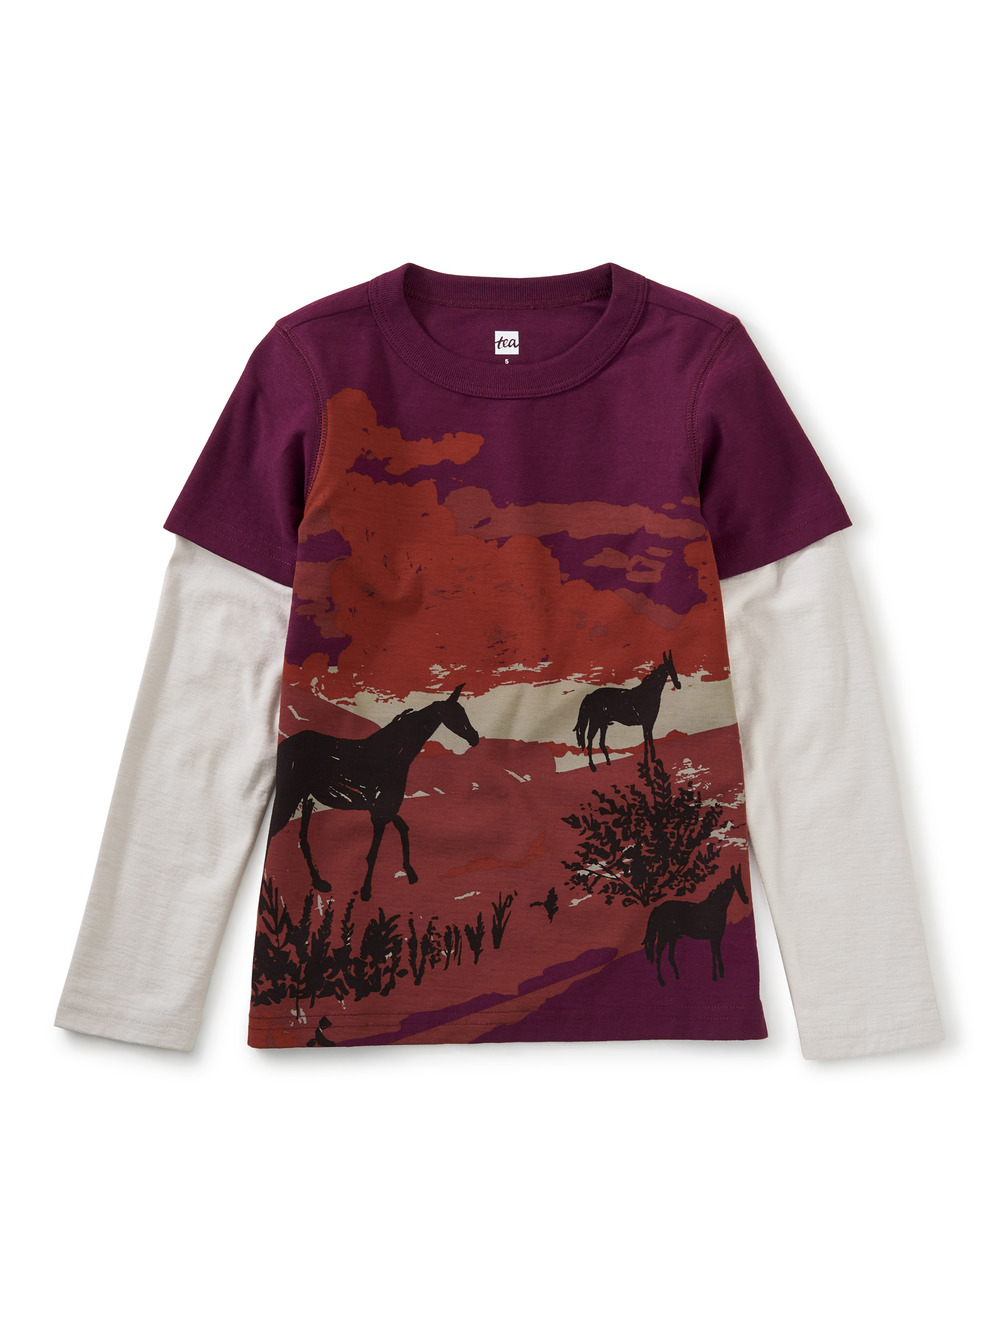 Estancia Layered Graphic Tee